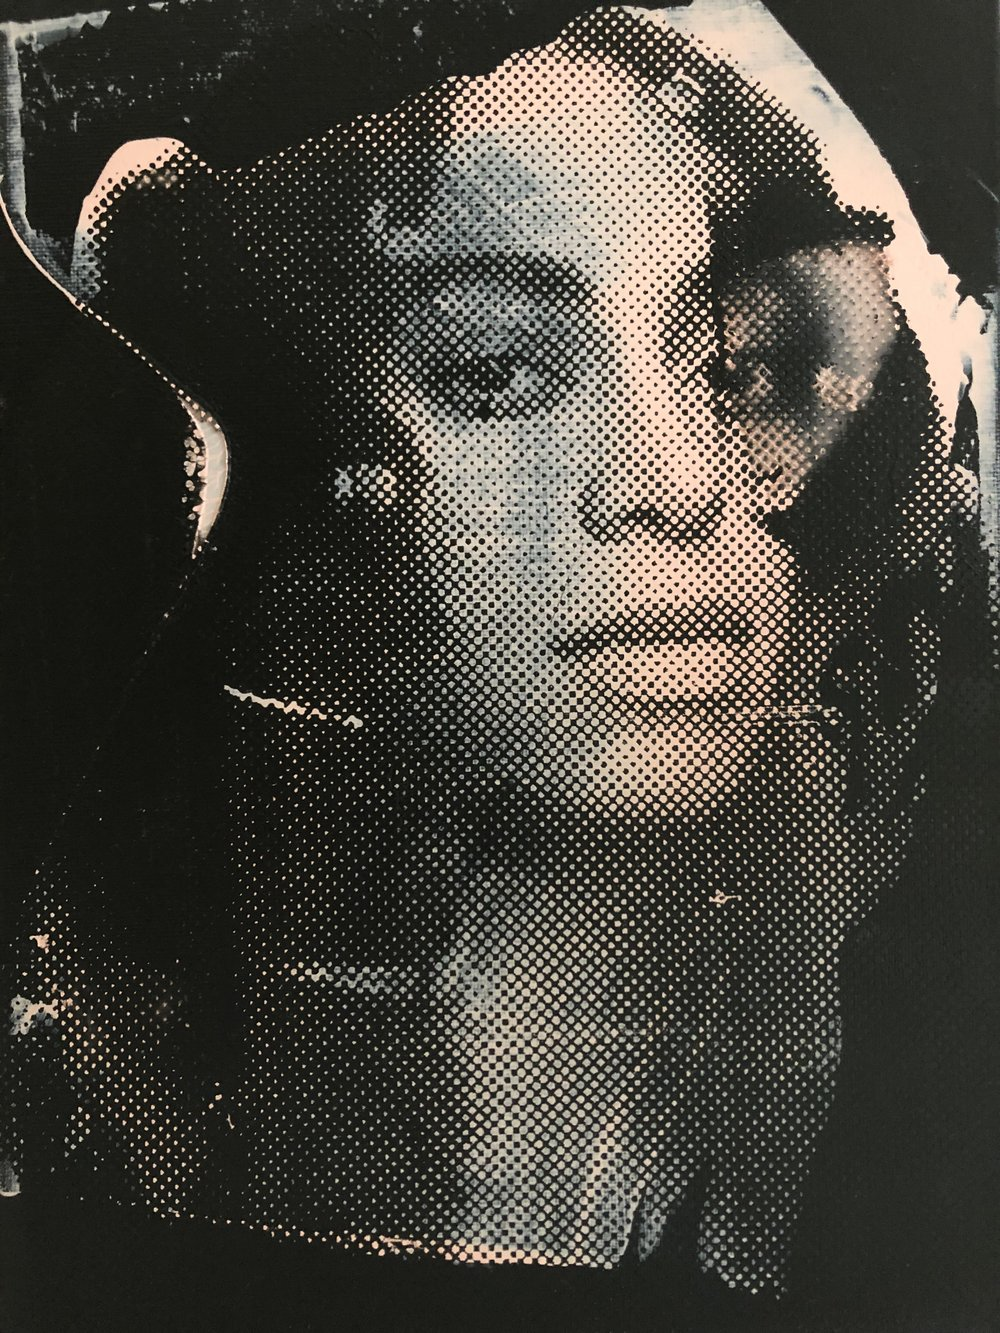 Solange, acrylic, spray paint and screen print on canvas, 40 x 50 cm